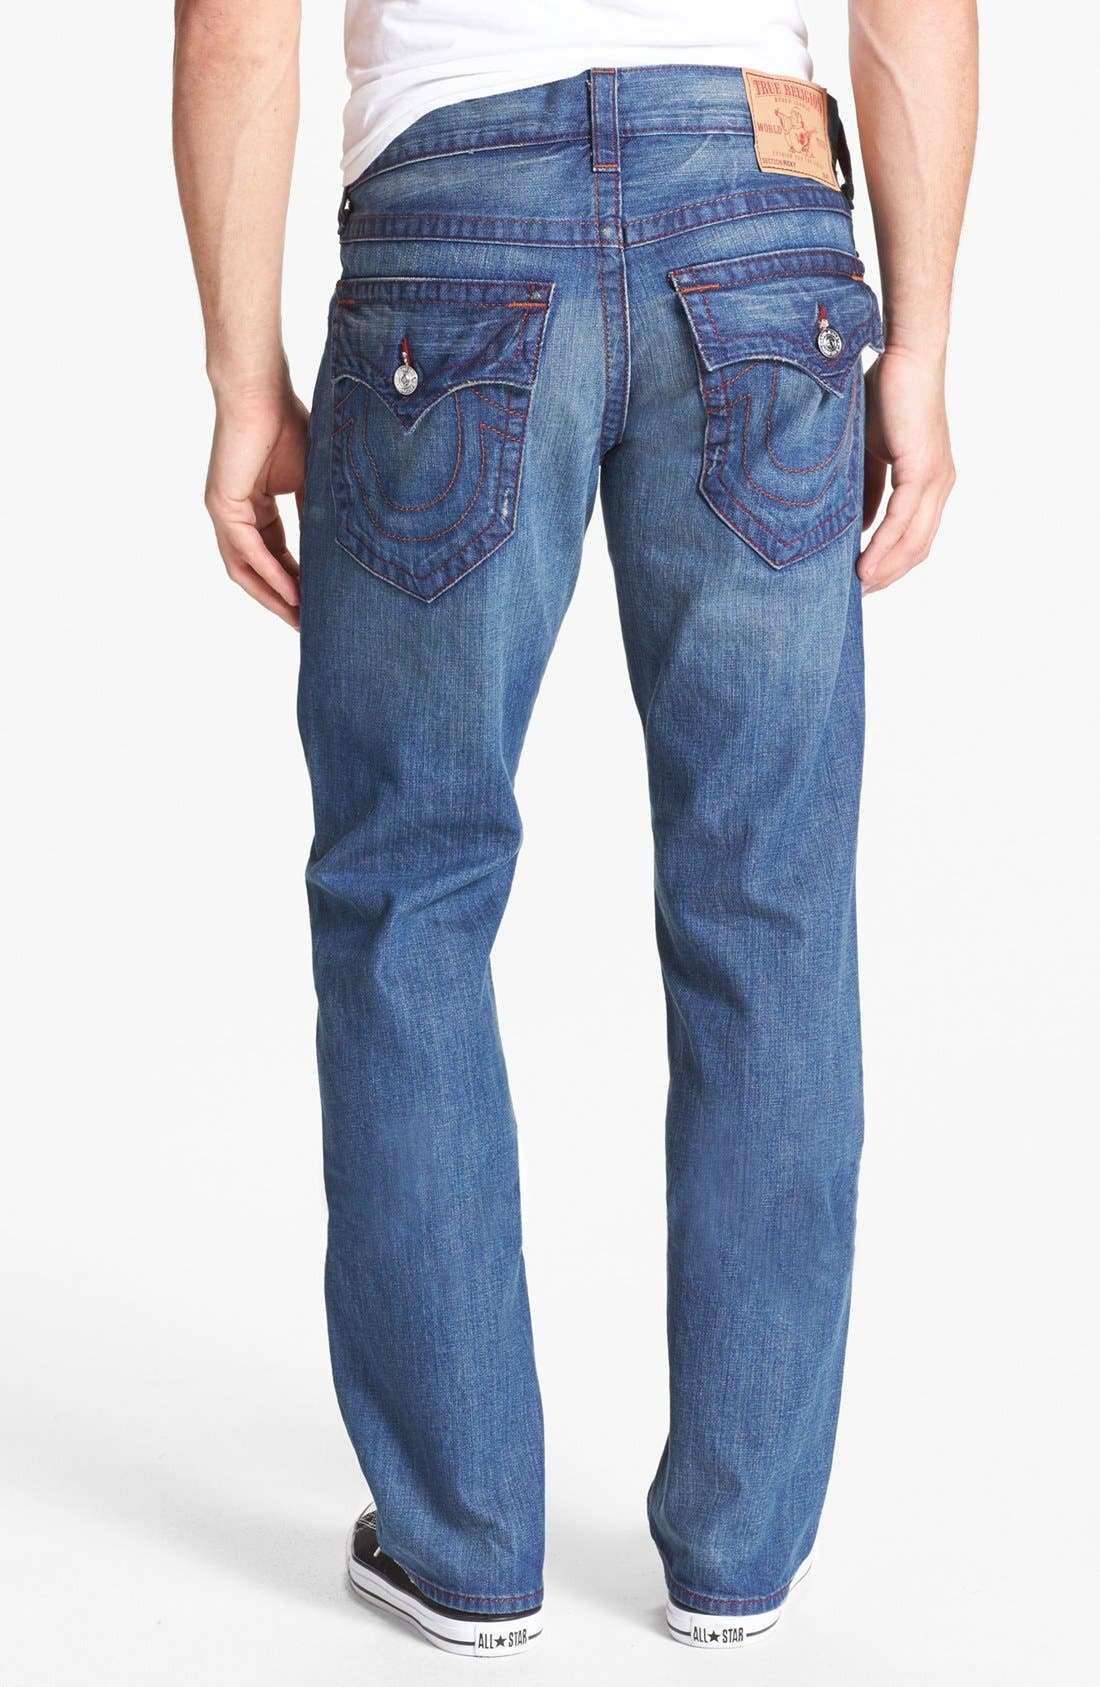 Alternate Image 1 Selected - True Religion Brand Jeans 'Ricky' Straight Leg Jeans (Medium Drifter)